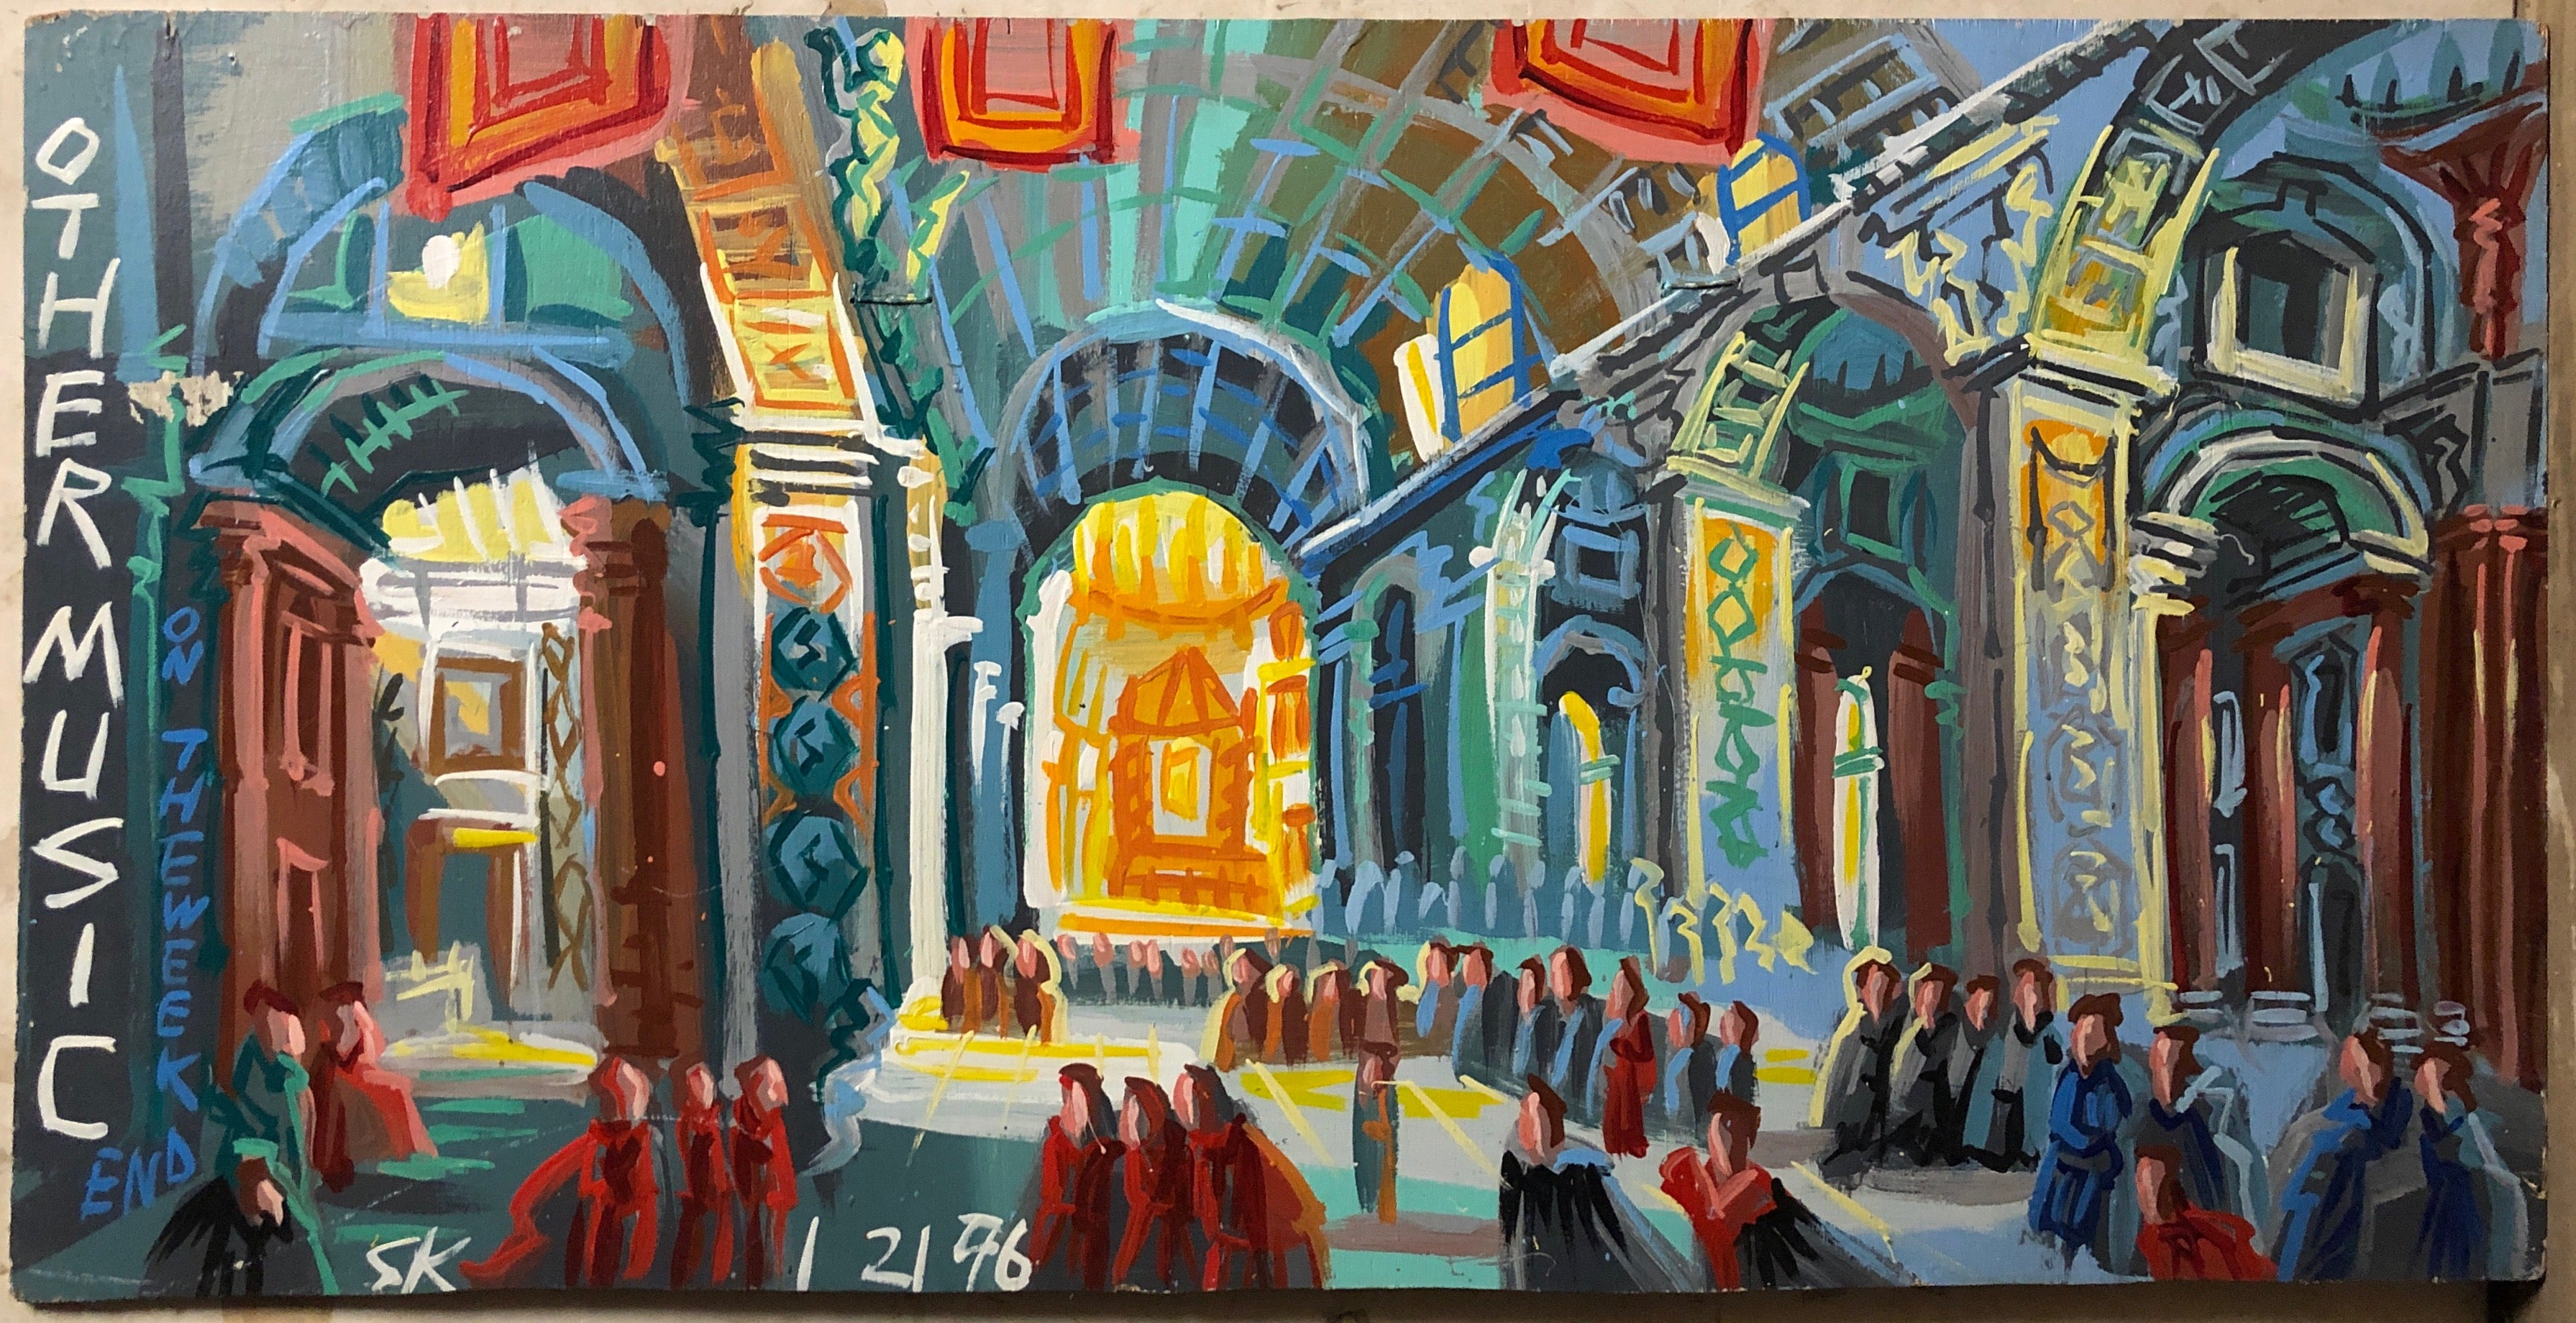 A Steve Keene painting of a cathedral with high arched ceilings and congregants inside.